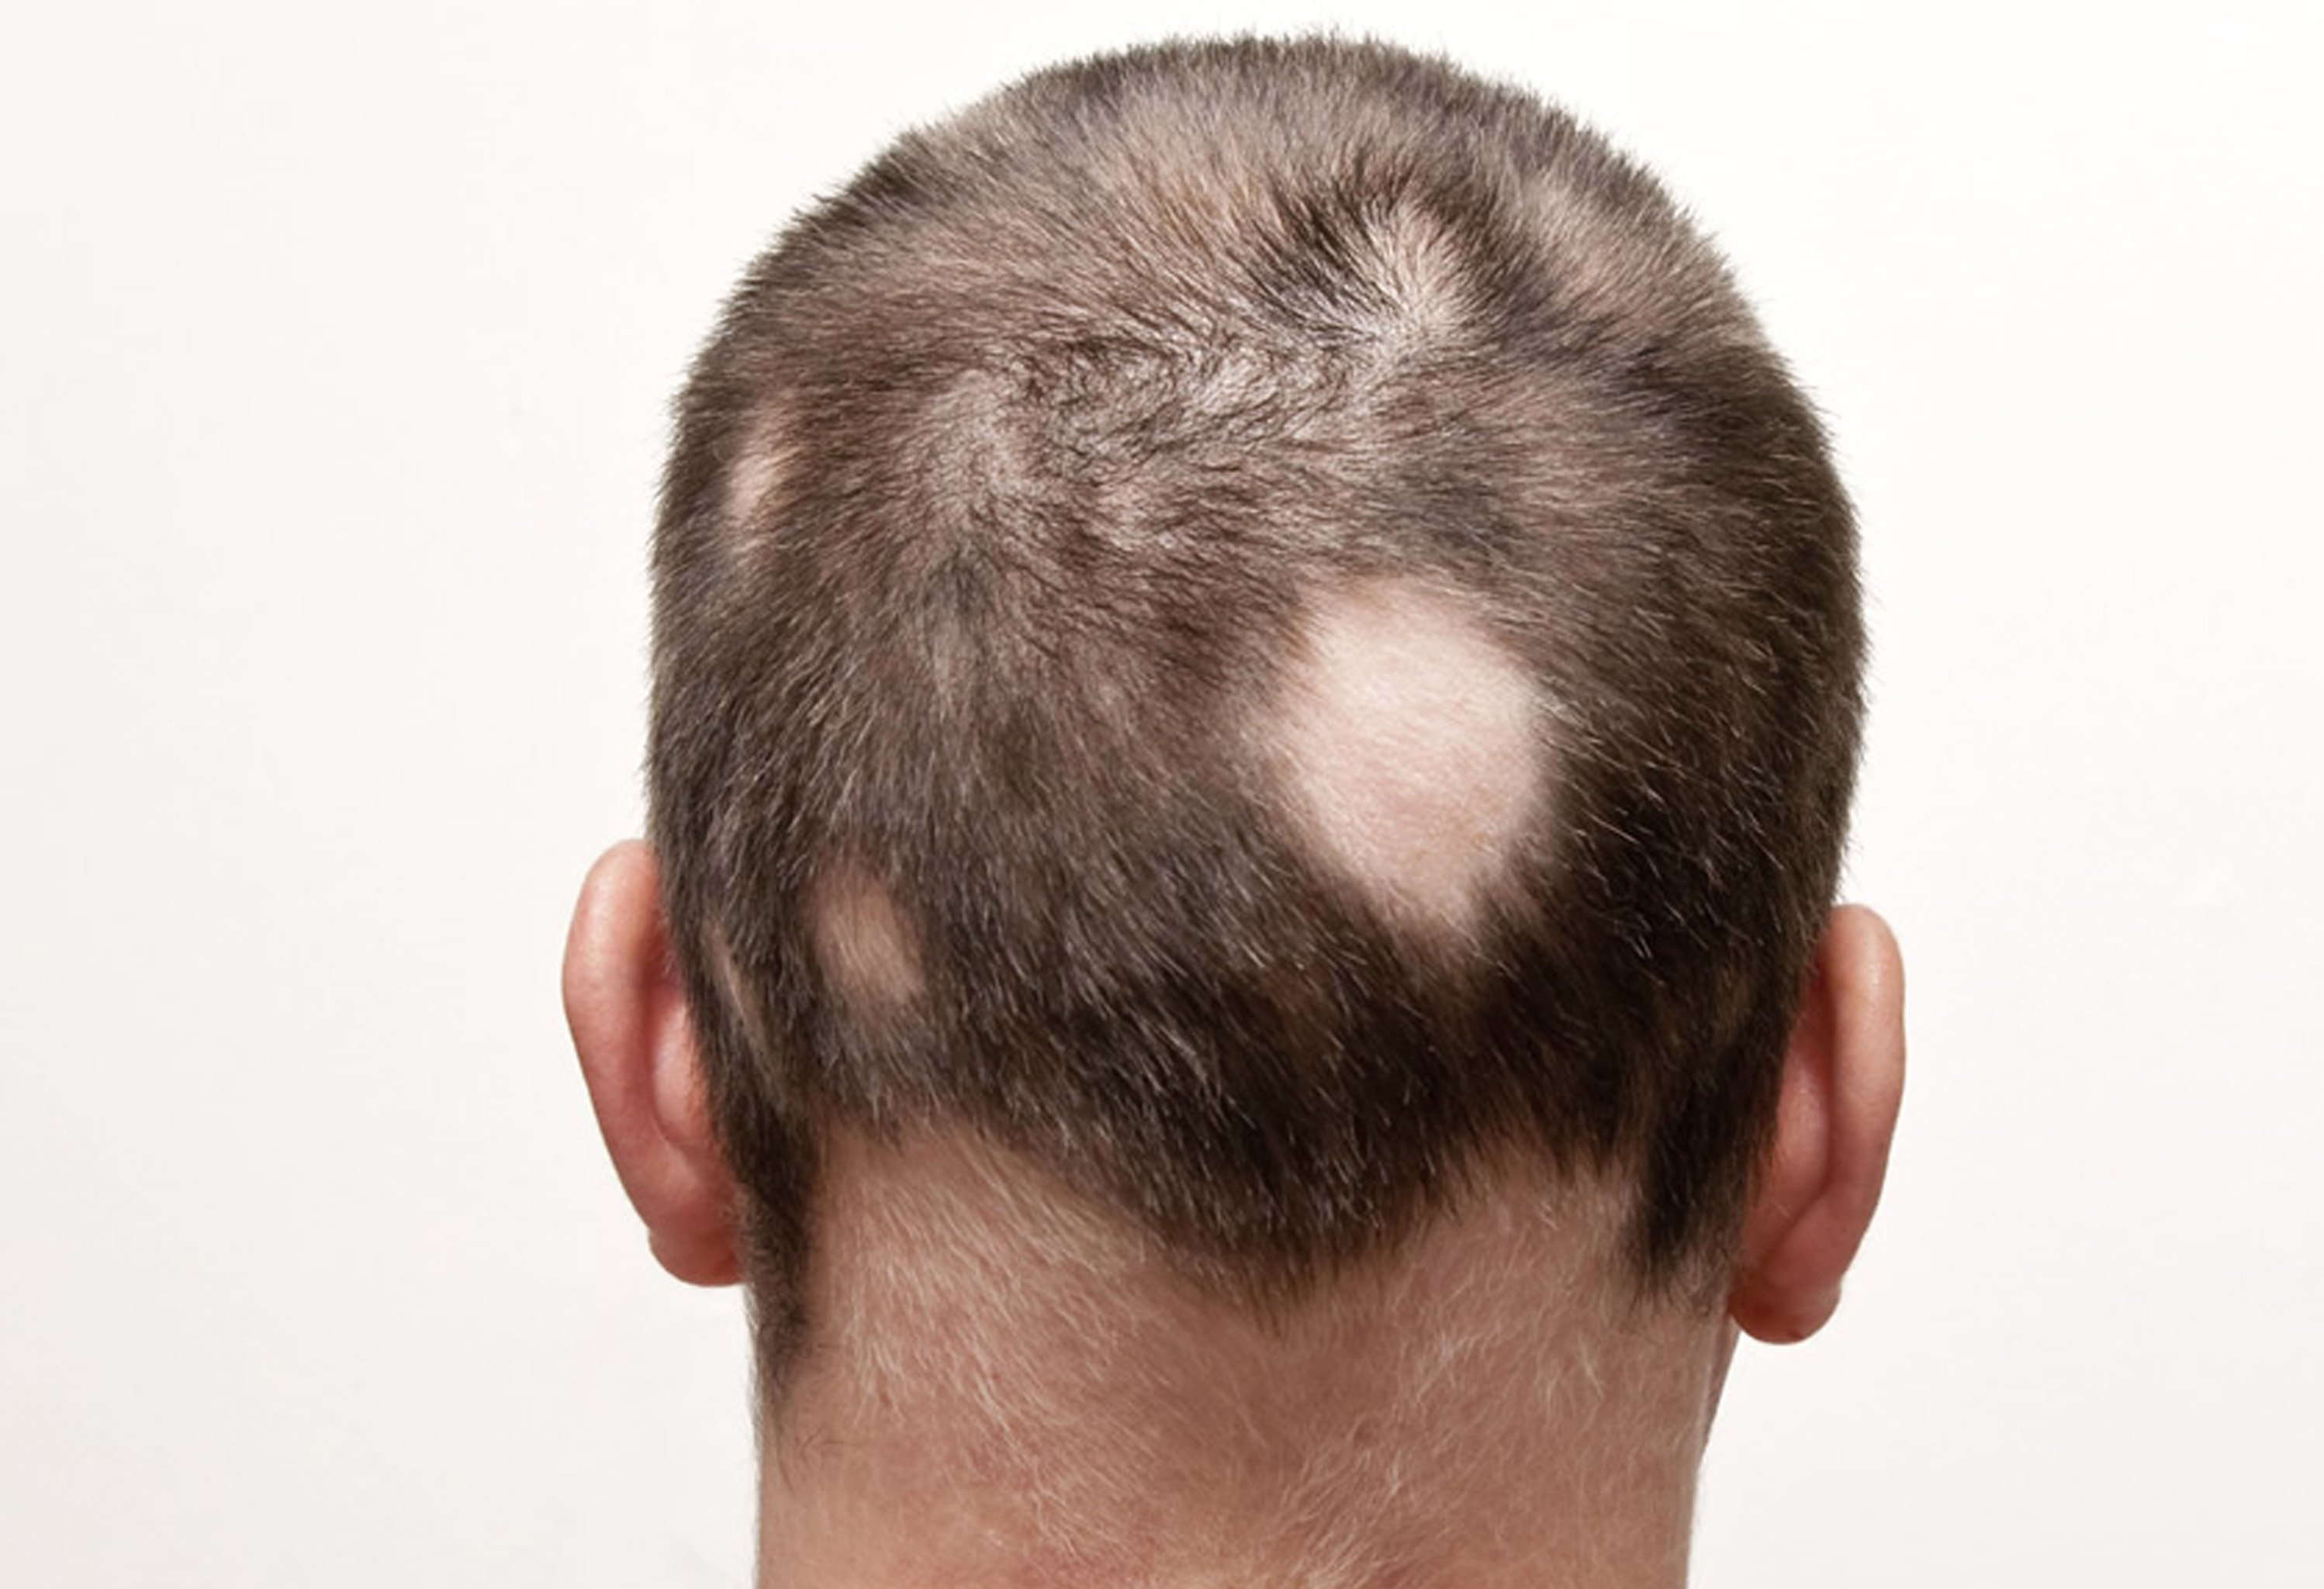 Treatment For Alopecia